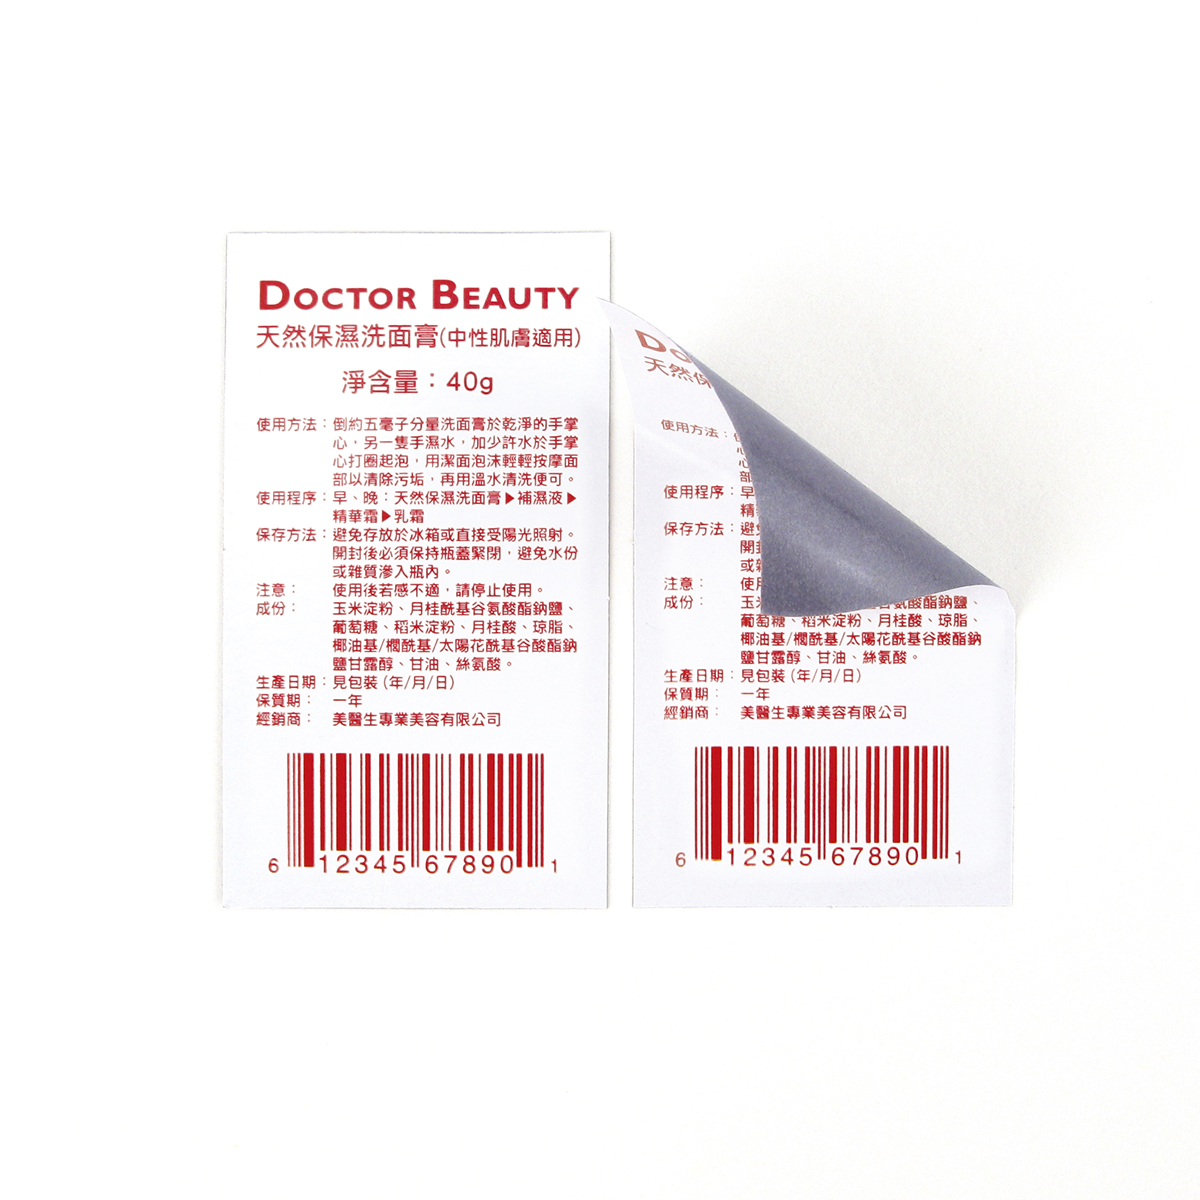 Cover Up Label